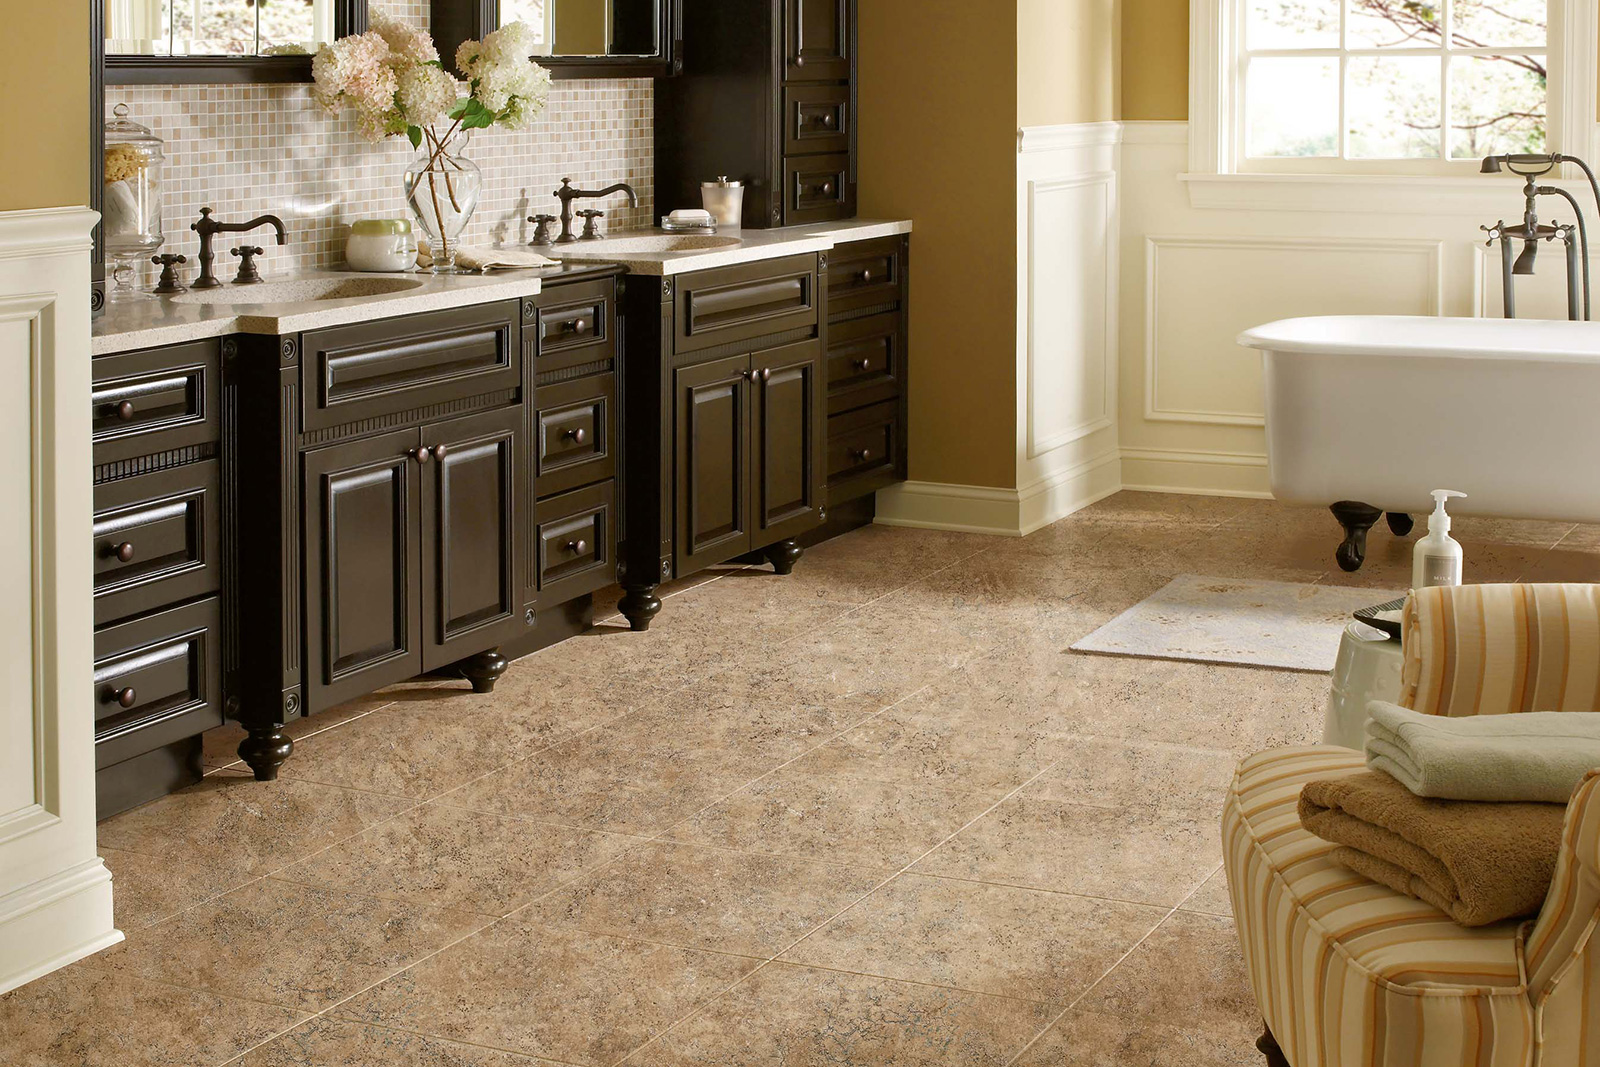 Bathroom flooring bathroom flooring options houselogic bathrooms dailygadgetfo Image collections